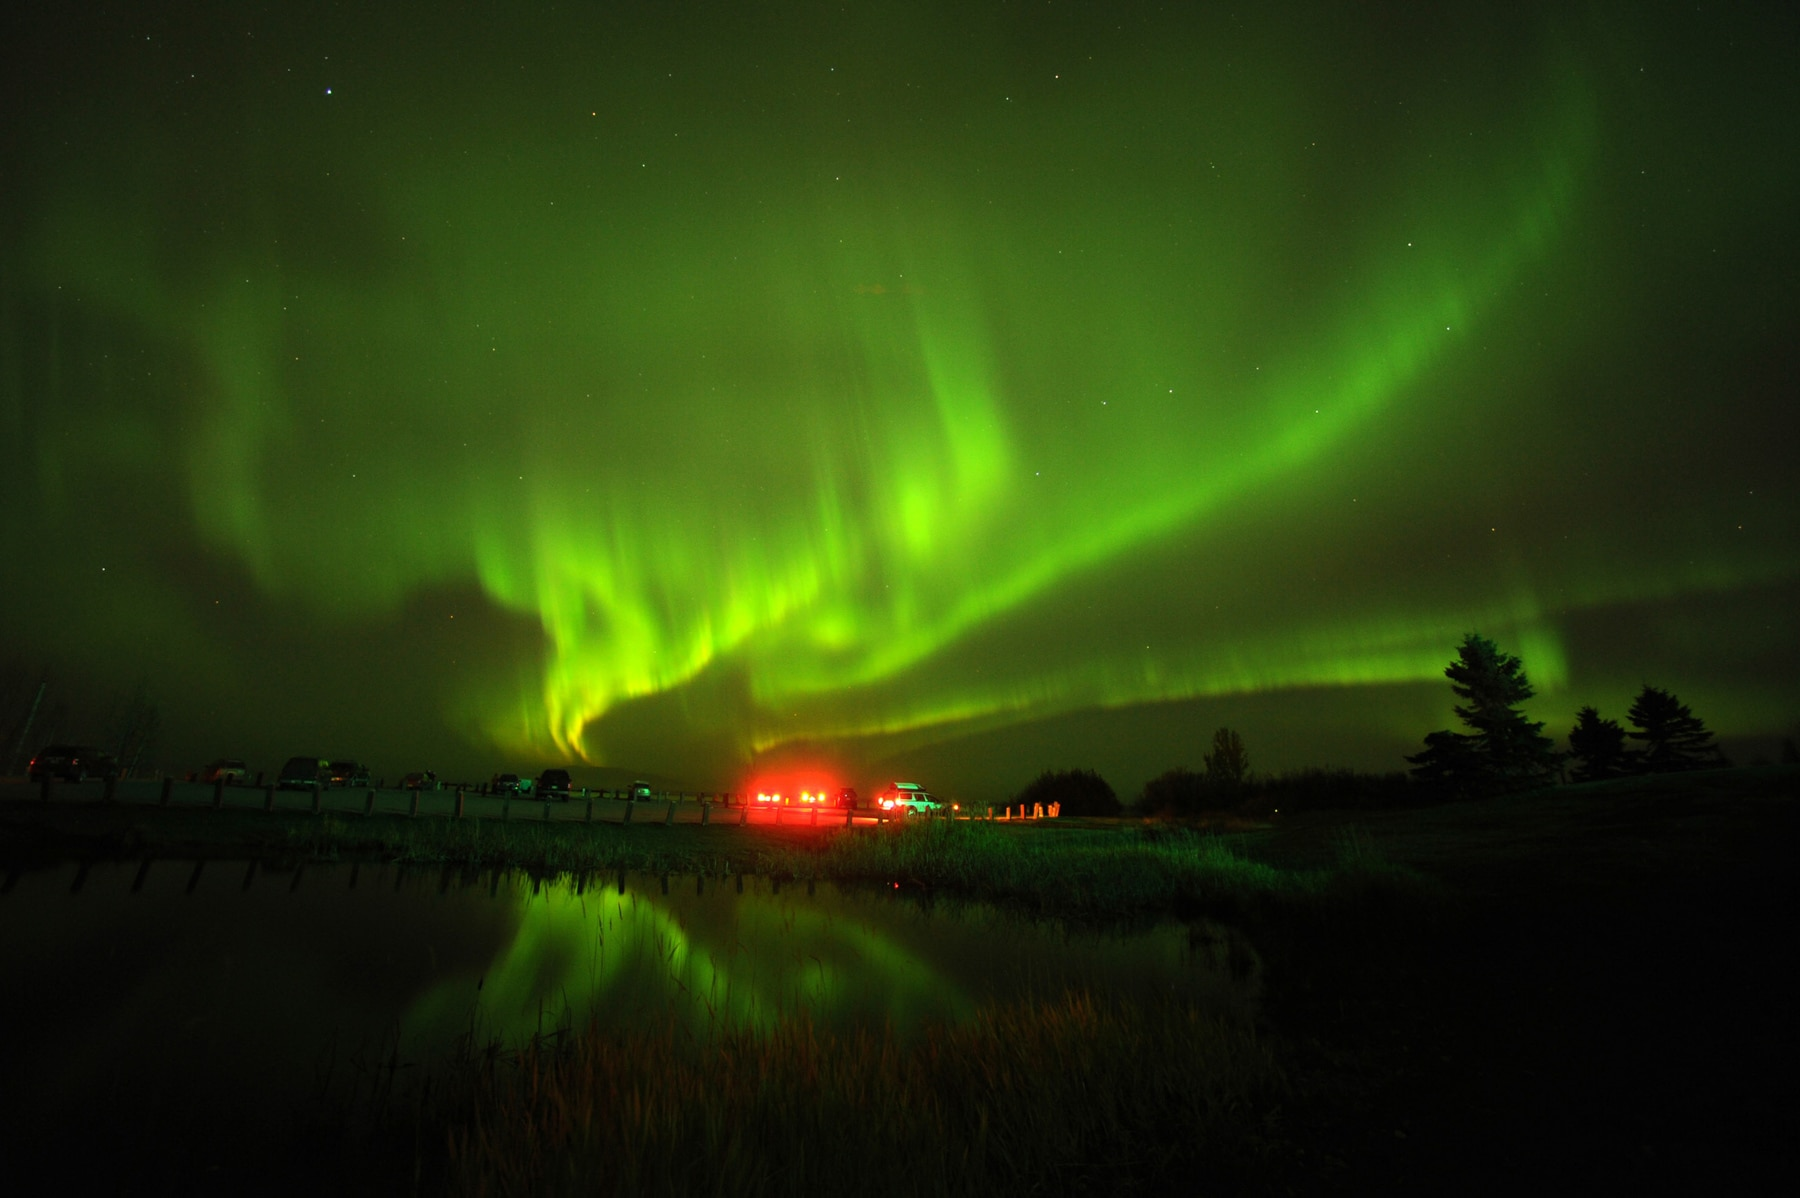 Northern lights making green streaks across a night sky, with a small building glowing red (© Bob Hallinen/Anchorage Daily News/MCT/Getty Images)